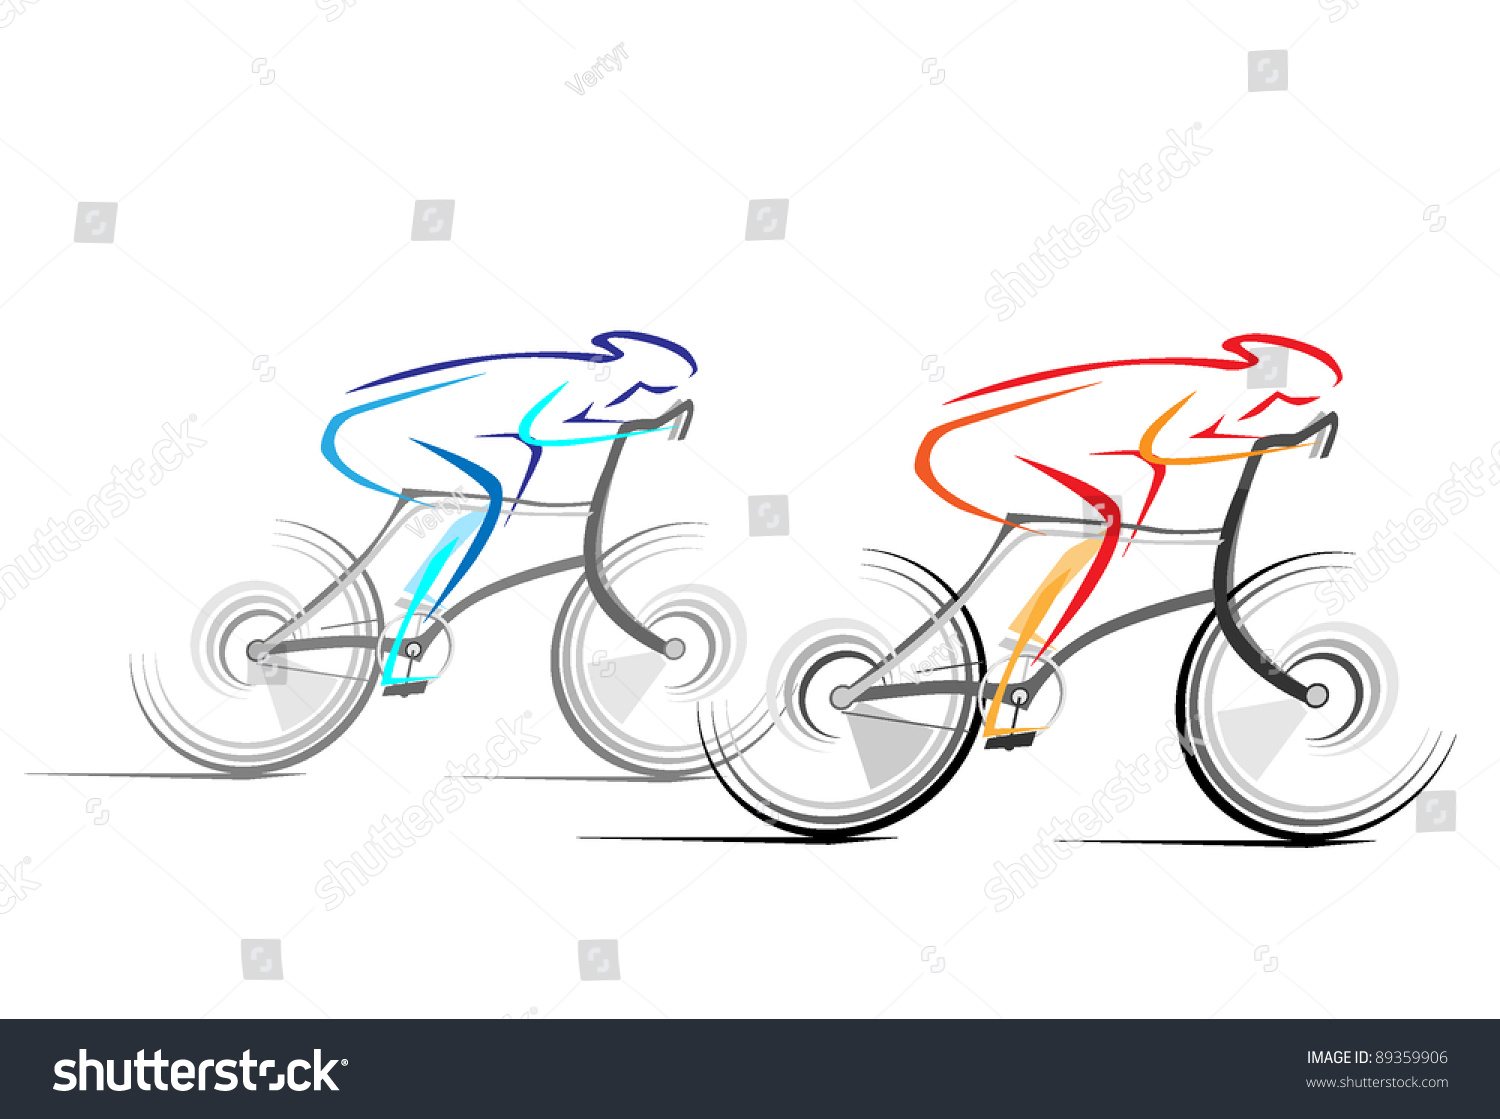 Vector Drawing Lines Html : Abstract vector drawing bicycle races in line style